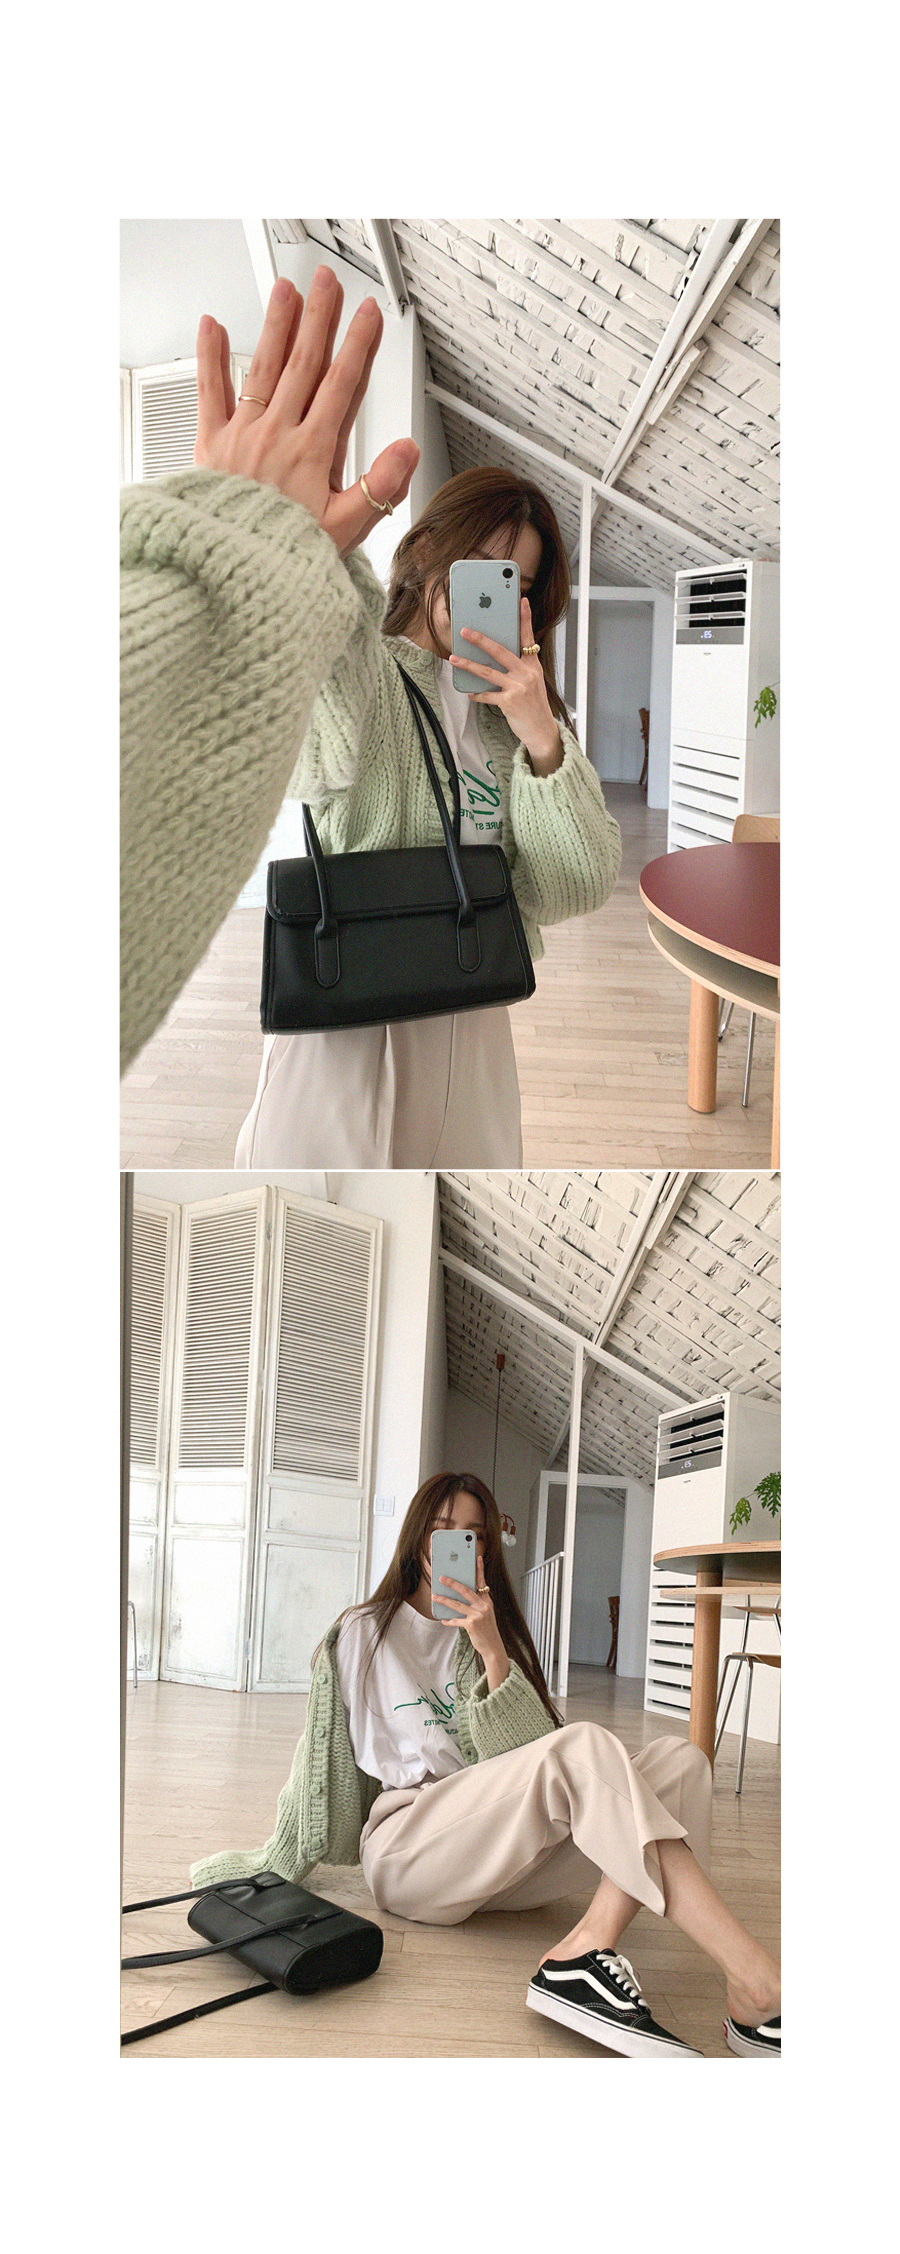 Her Choice Square Bag